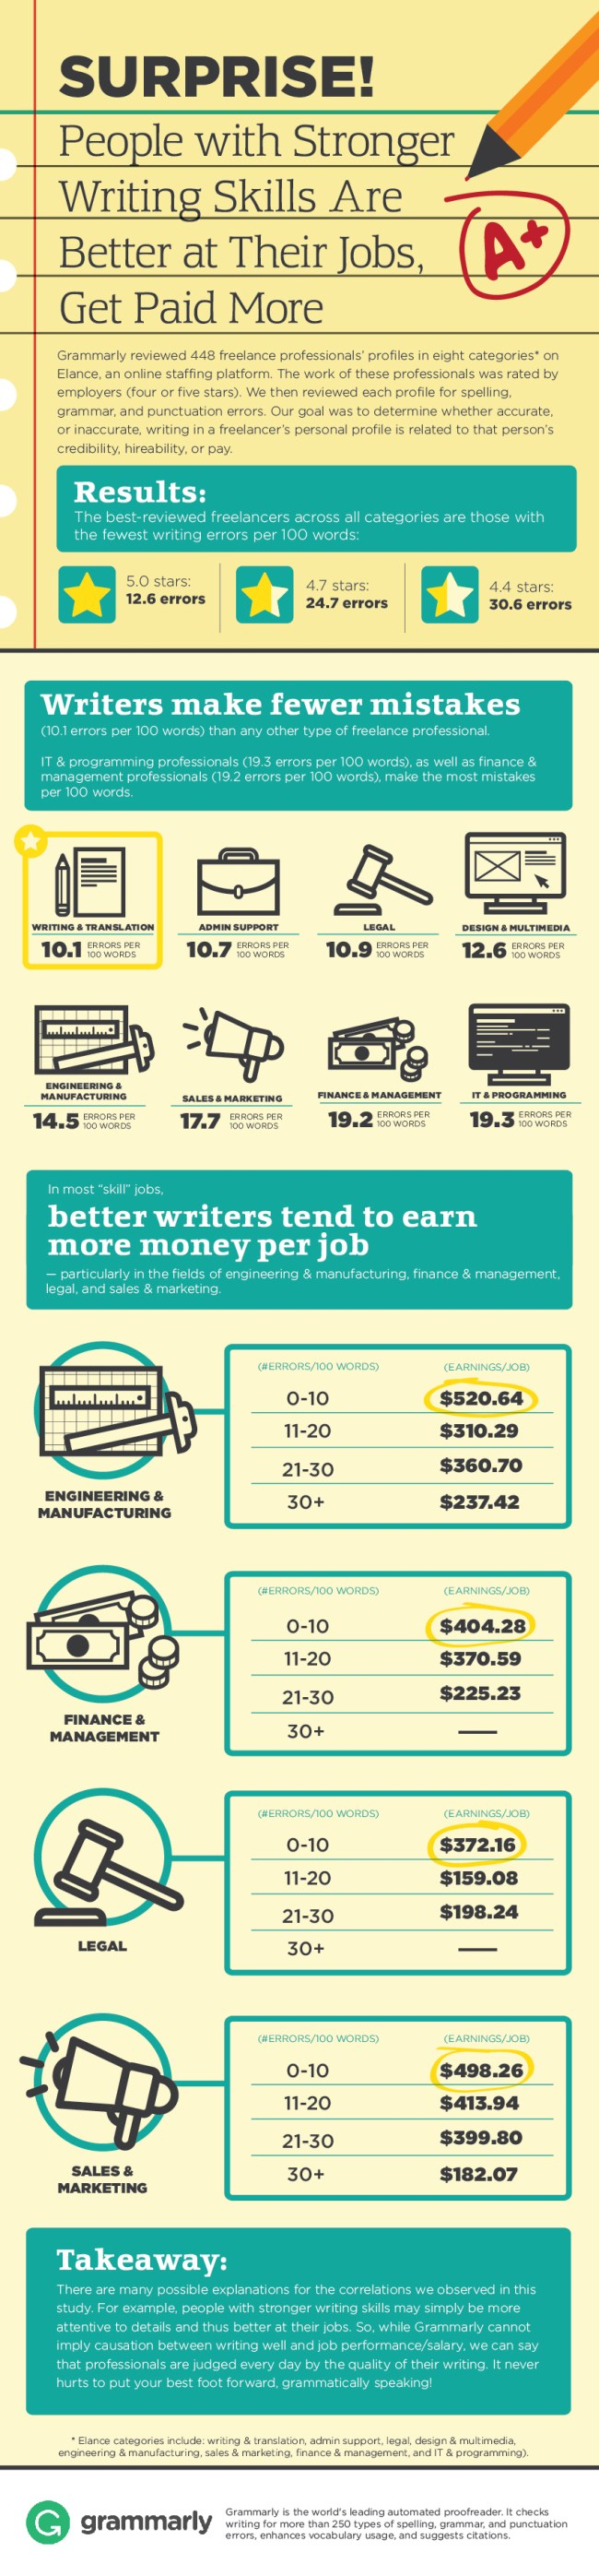 People with Stronger Writing Skills Are Better at Their